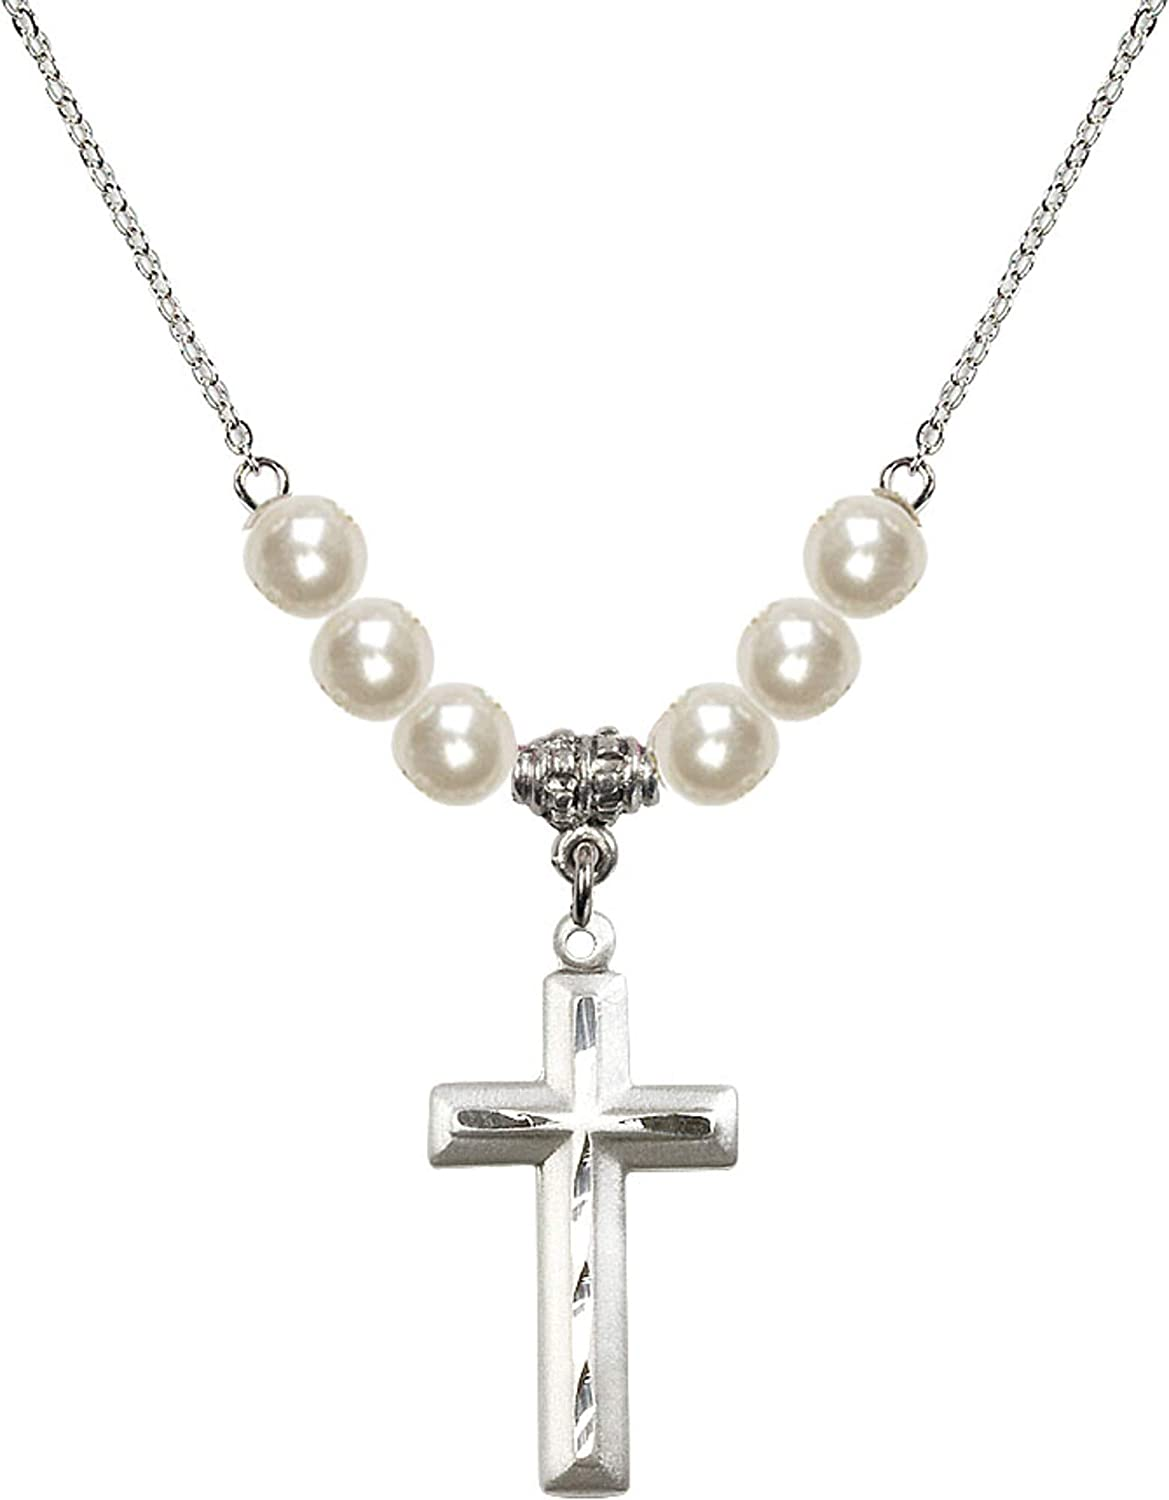 Bonyak Jewelry 18 Inch Rhodium Plated Necklace w// 6mm Faux-Pearl Beads and Cross Charm